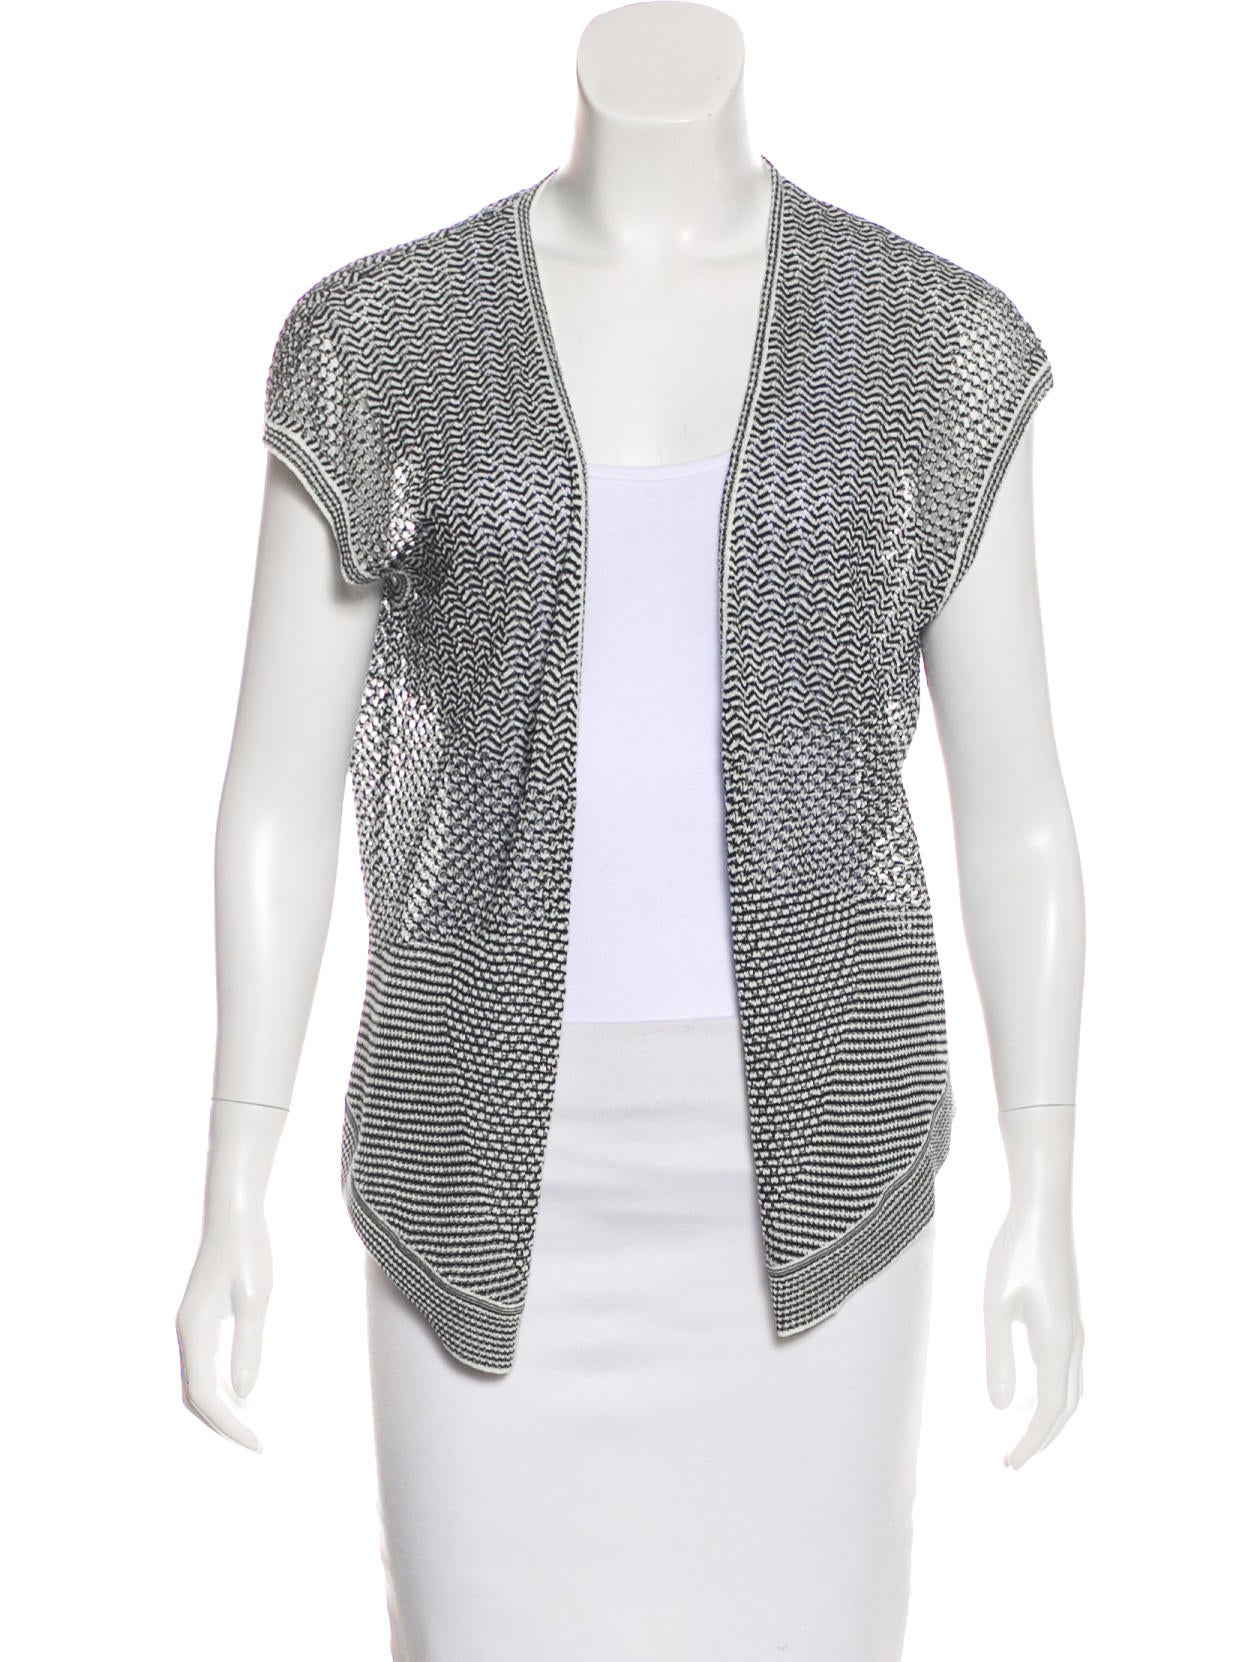 Magaschoni Short Sleeve Knit Cardigan - Clothing - WN125860 | The ...